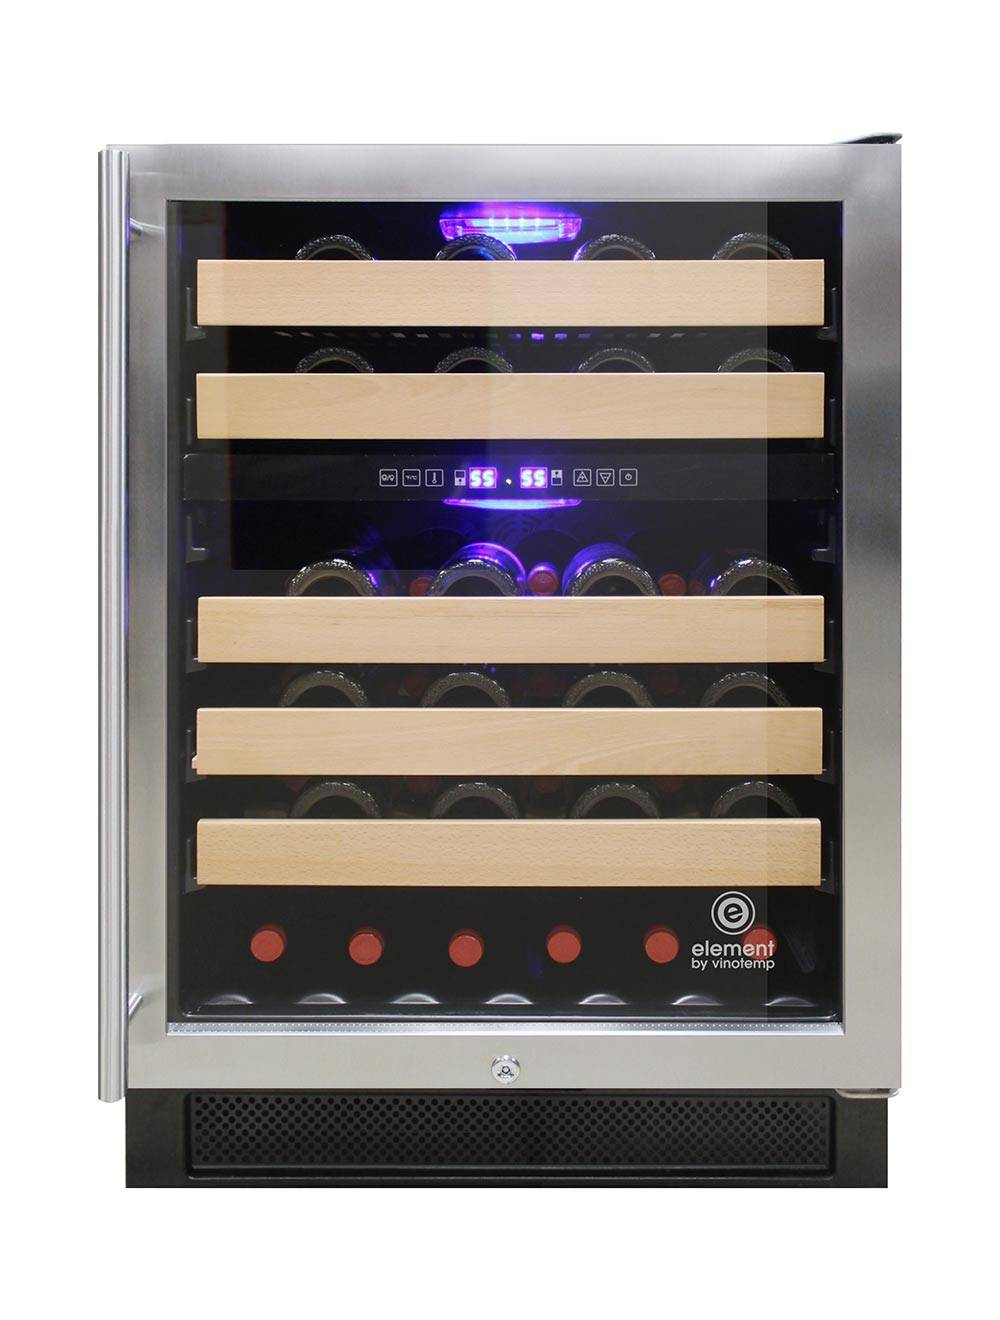 46-bottle wine refrigerator